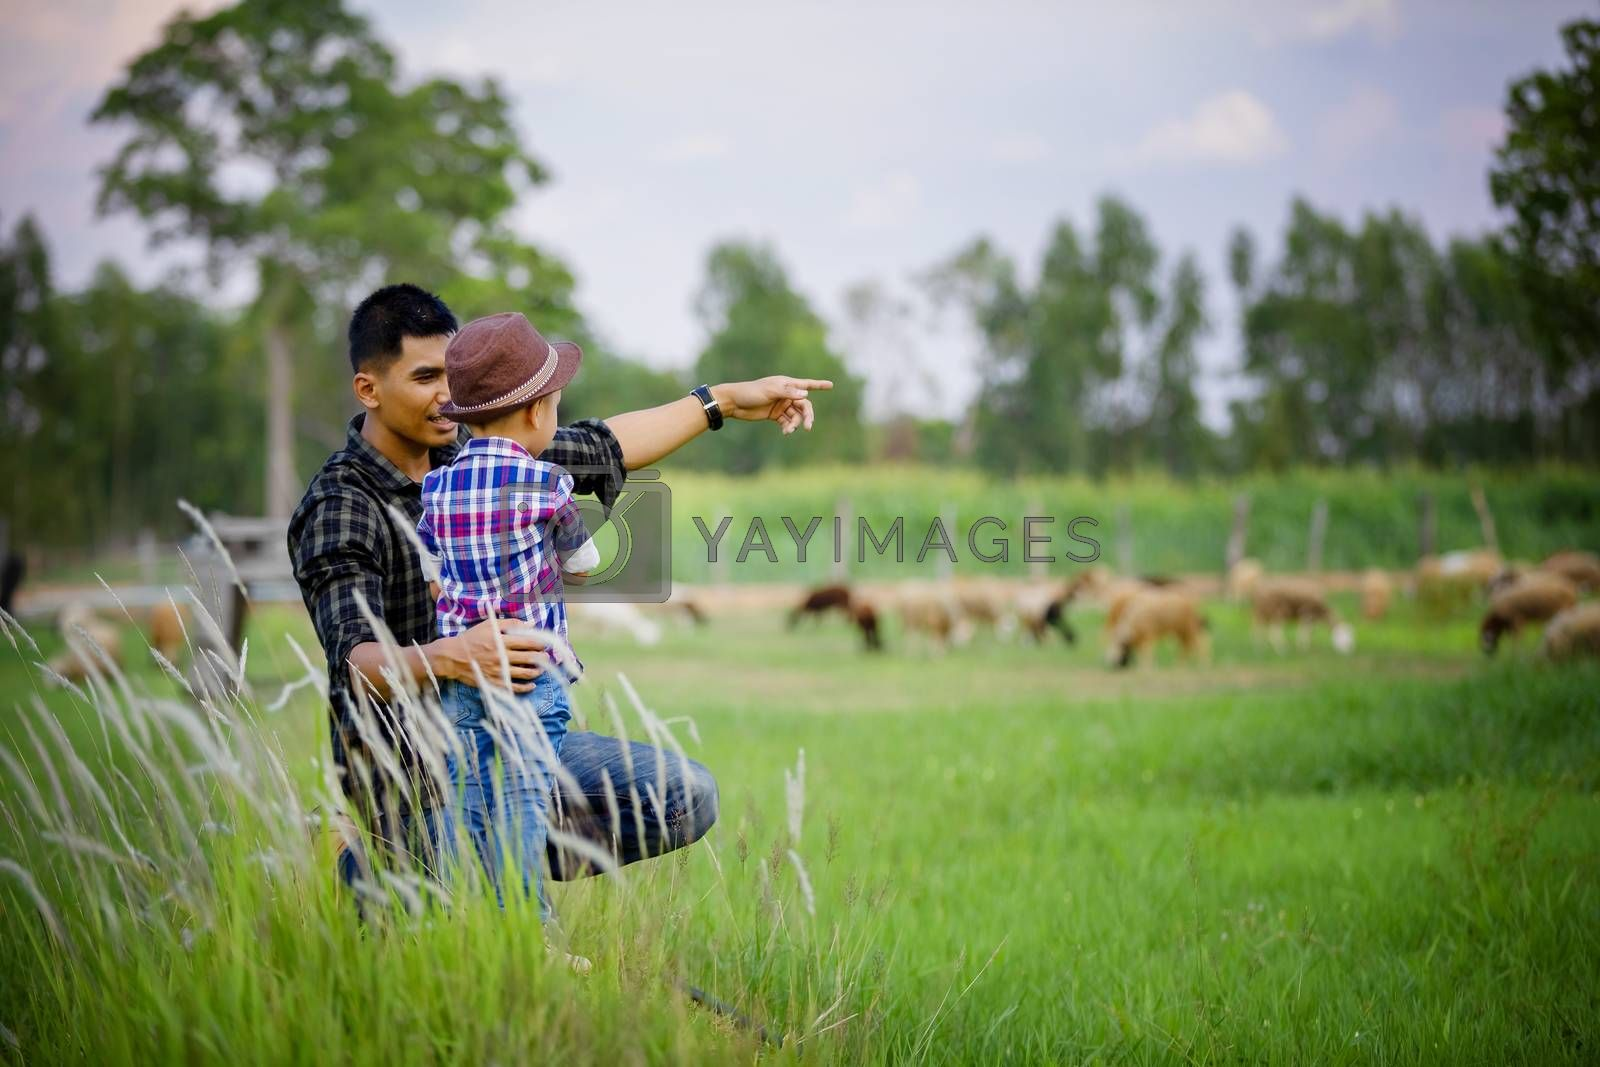 Father and son sat looking at the sheep on their farm and pointing their hands toward the sheep happily.